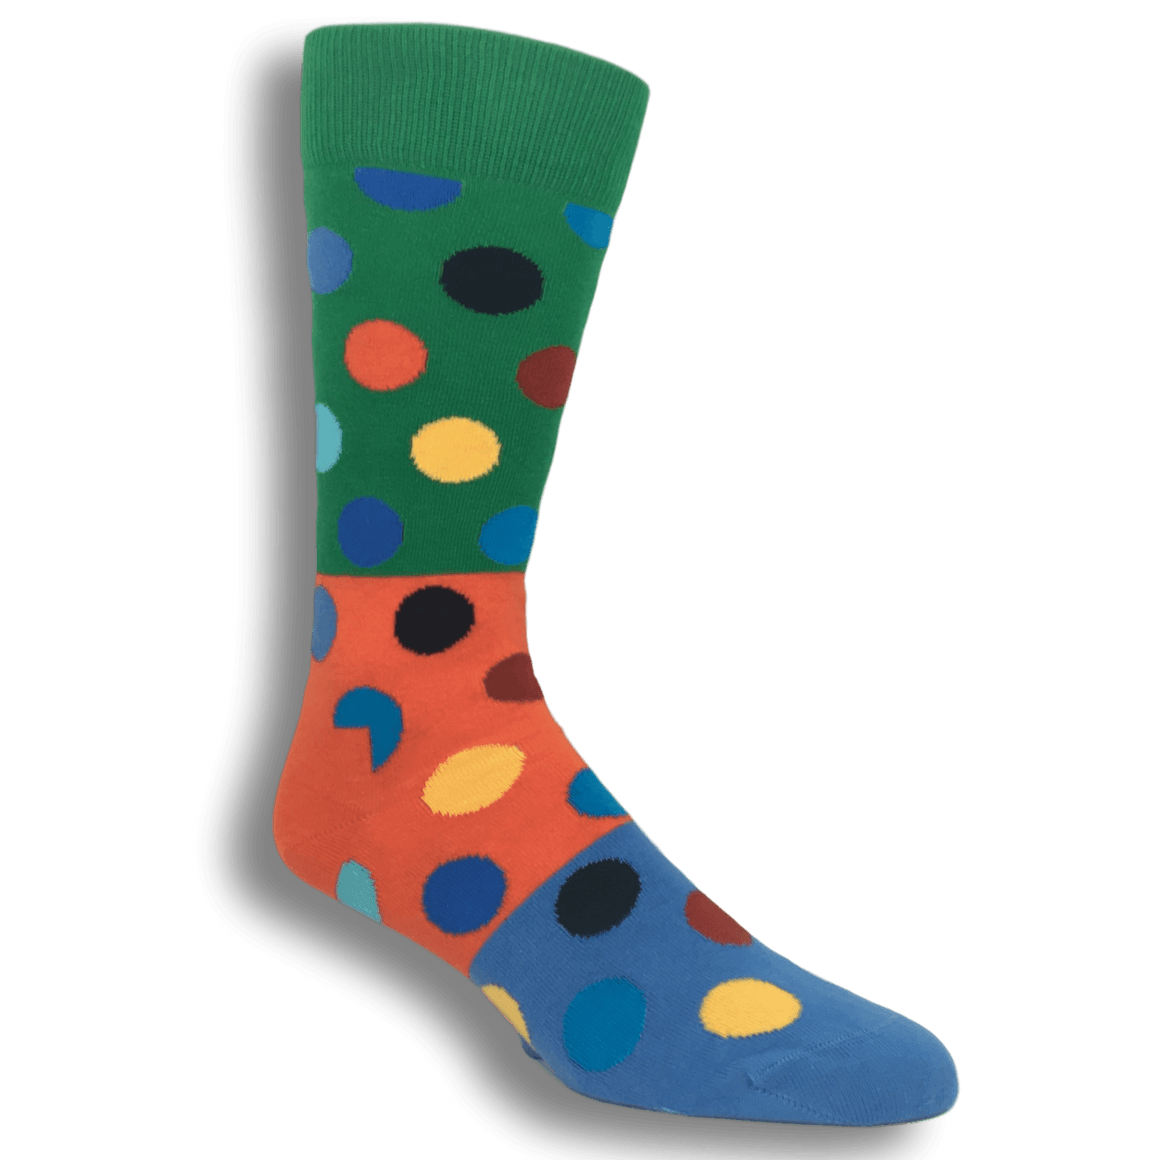 Green, Orange, and Blue Big Dots Block Socks by Happy Socks - The Sock Spot